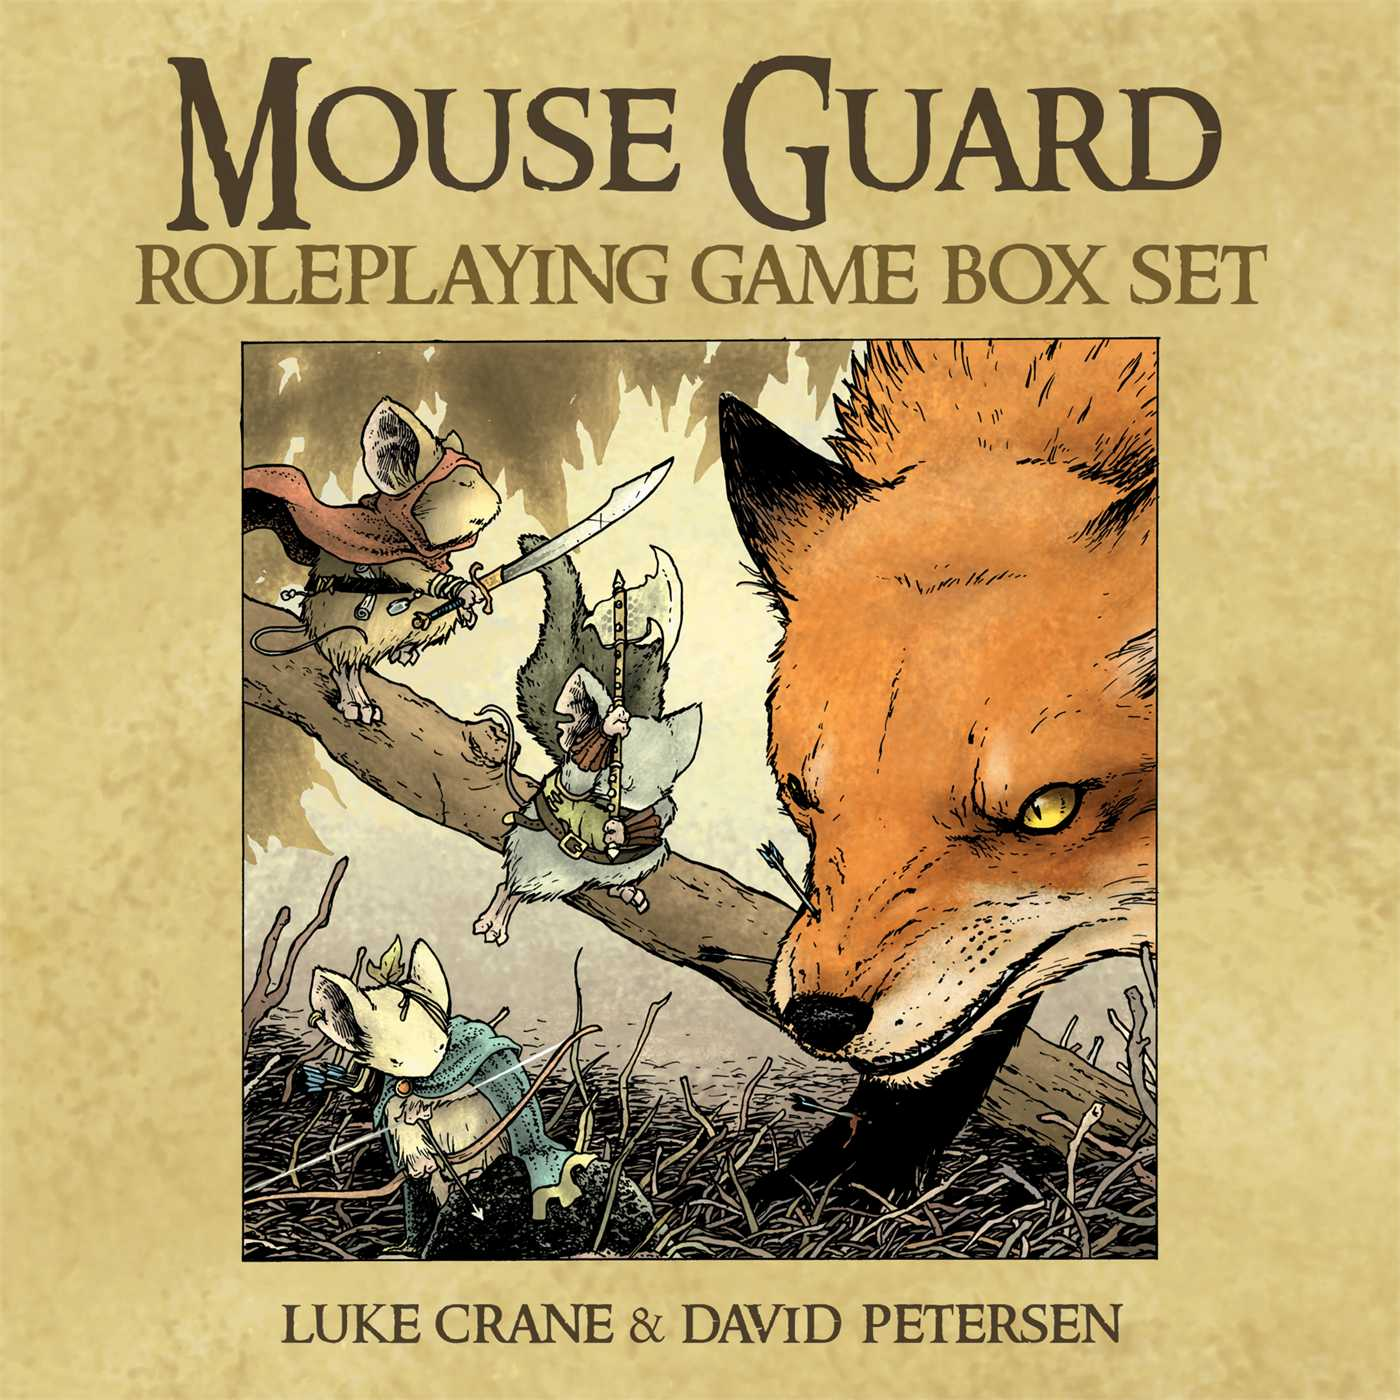 Mouse-guard-roleplaying-game-box-set-9781936393176_hr